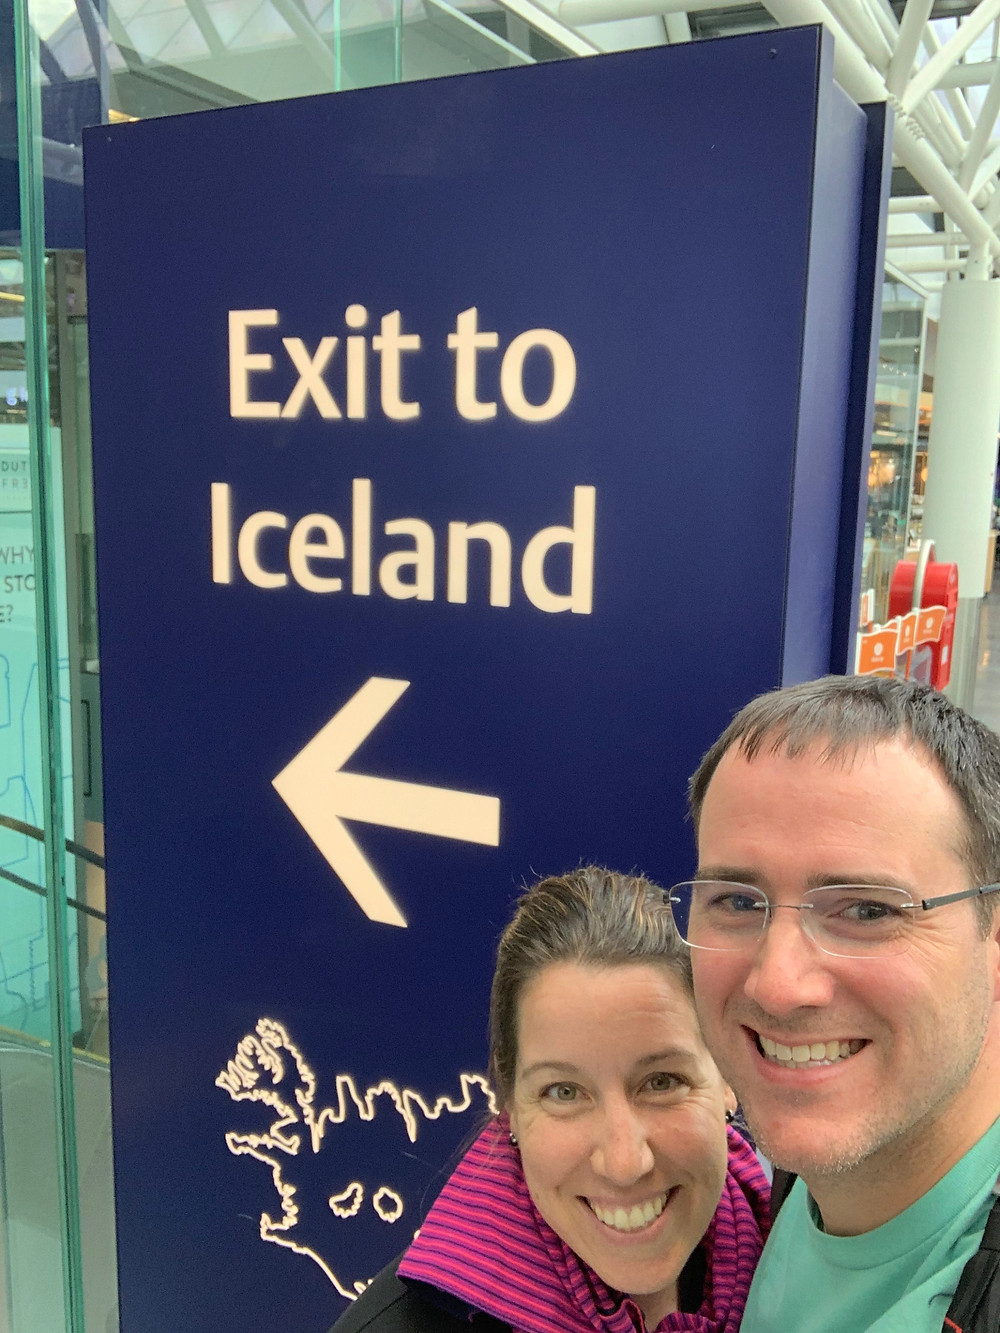 Starting our adventure in Iceland.